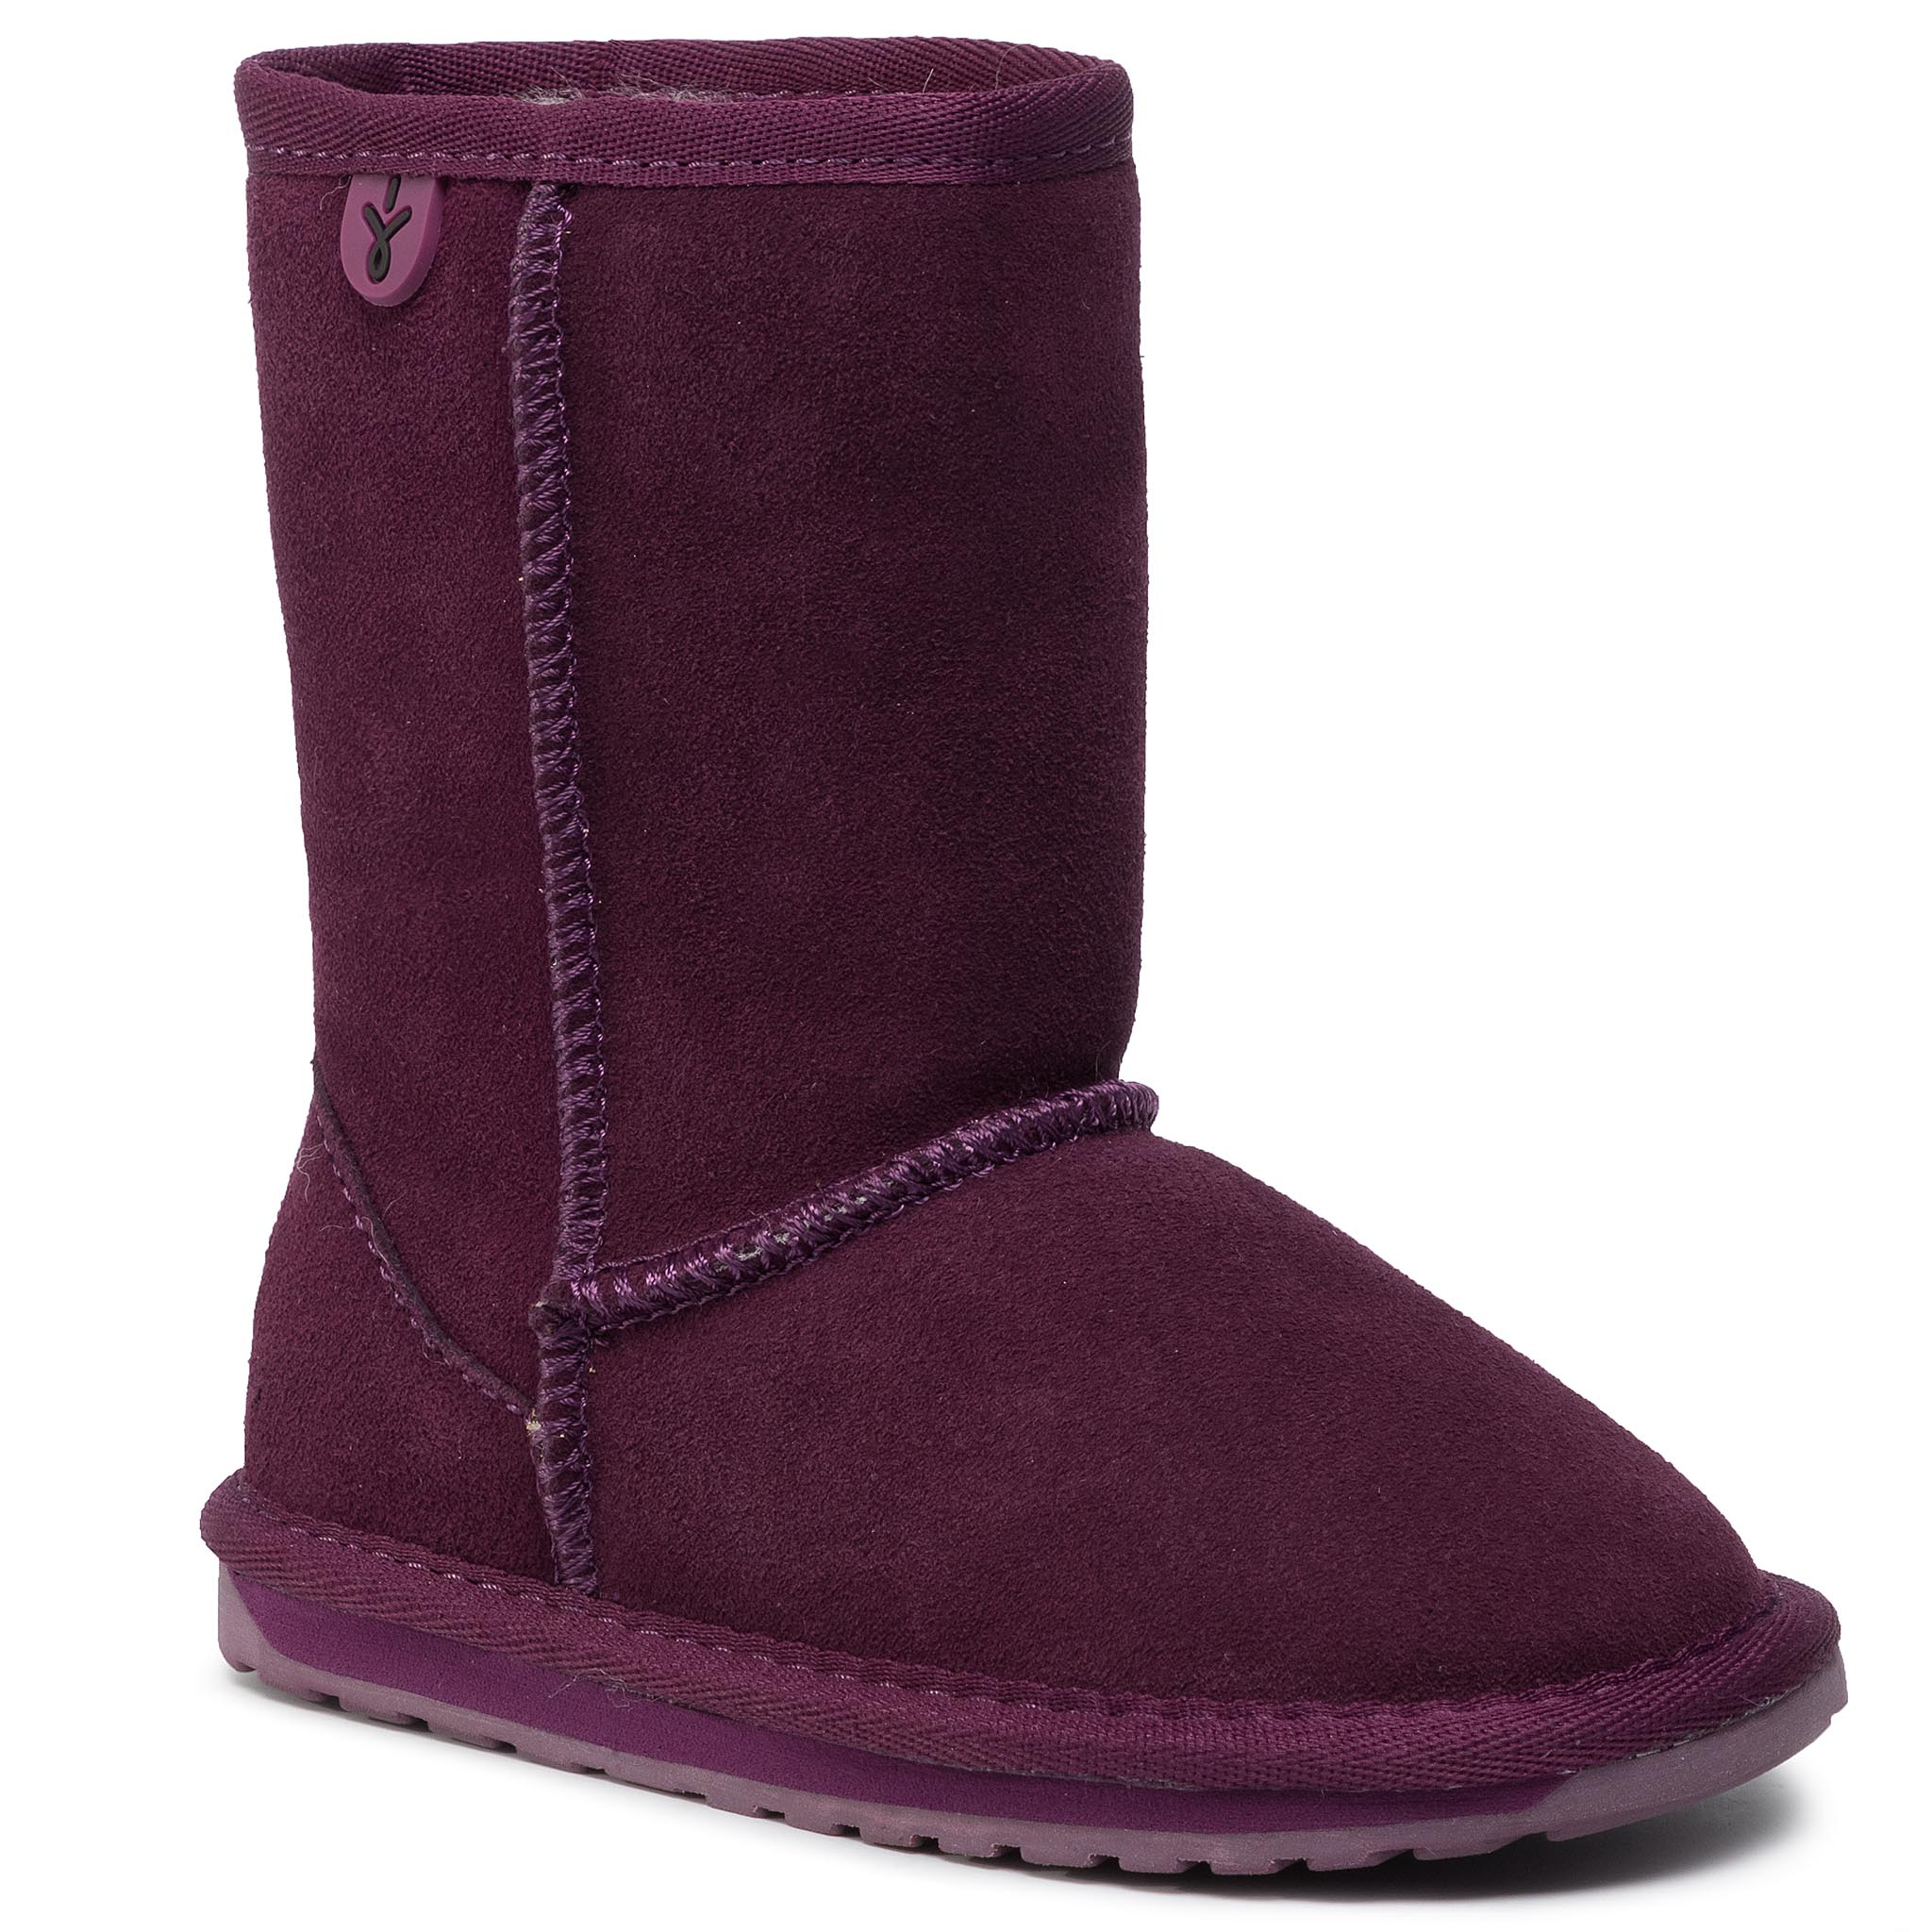 Pantofi Emu Australia - Wallaby Lo K10102 Plum imagine epantofi.ro 2021